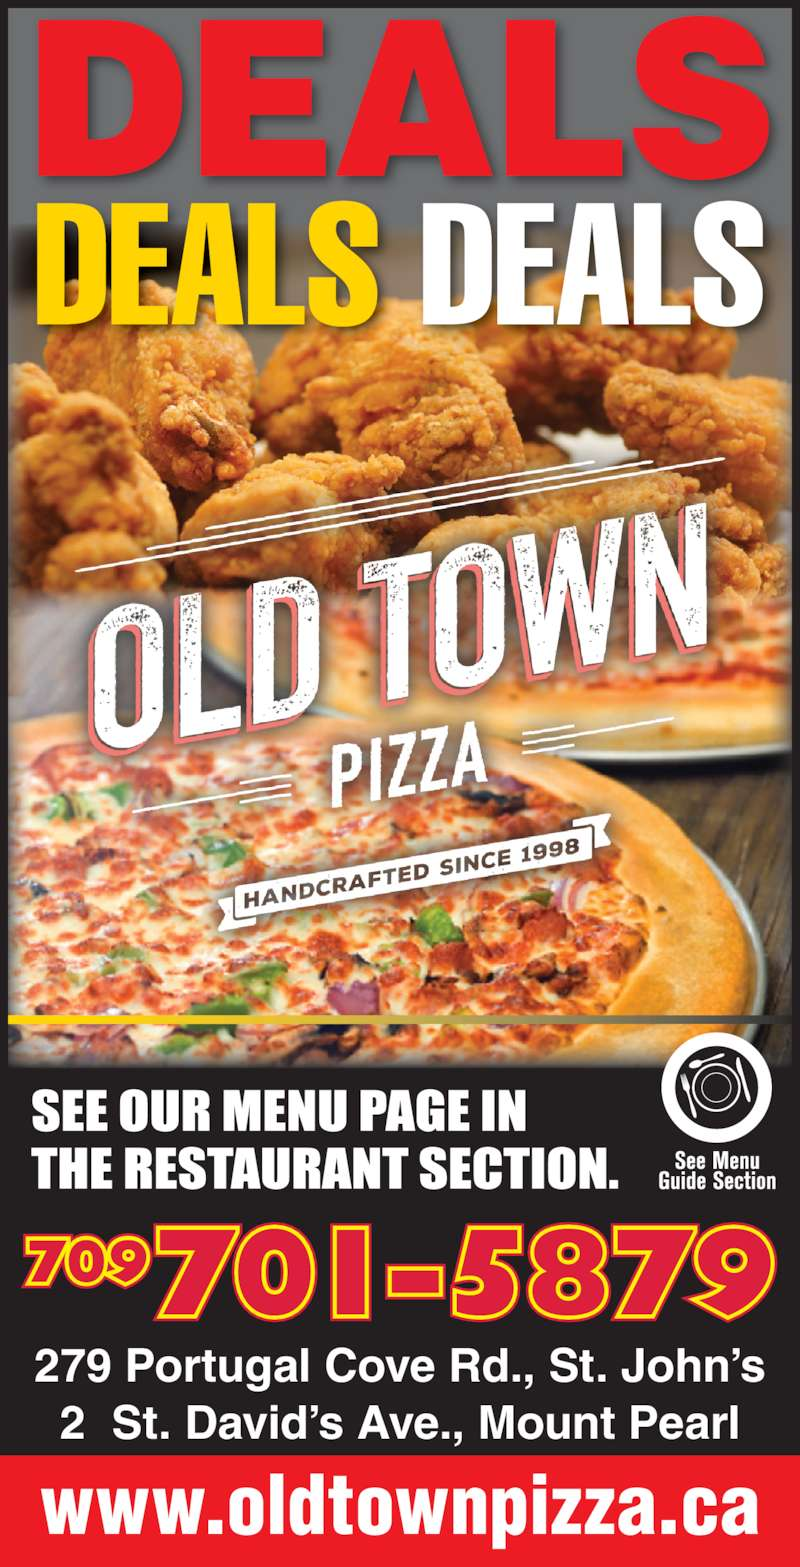 Old Town Pizzeria (709-738-1234) - Annonce illustrée======= - 279 Portugal Cove Rd., St. John's 2  St. David's Ave., Mount Pearl DEALS DEALS DEALS 709701-5879 www.oldtownpizza.ca